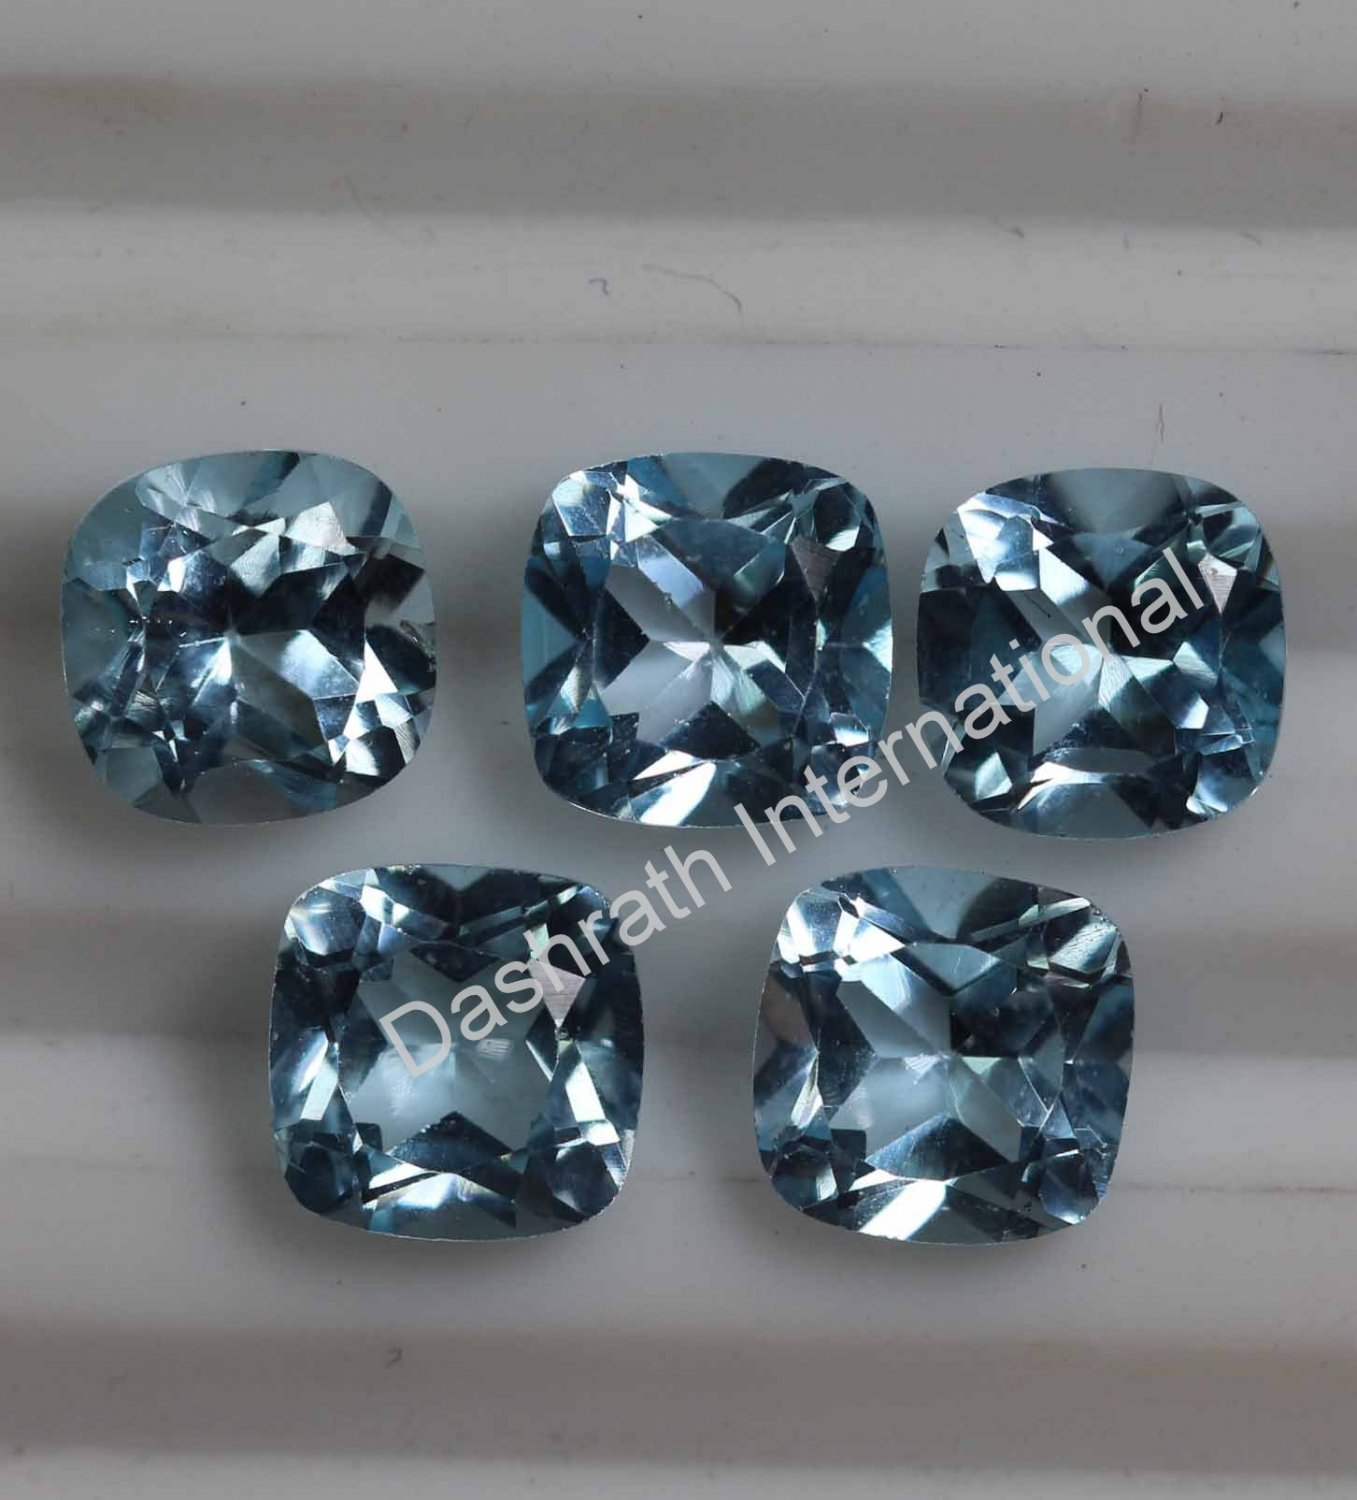 4mm Natural Sky Blue Topaz Faceted Cut Cushion 10 Pieces Lot Top Quality Loose Gemstone